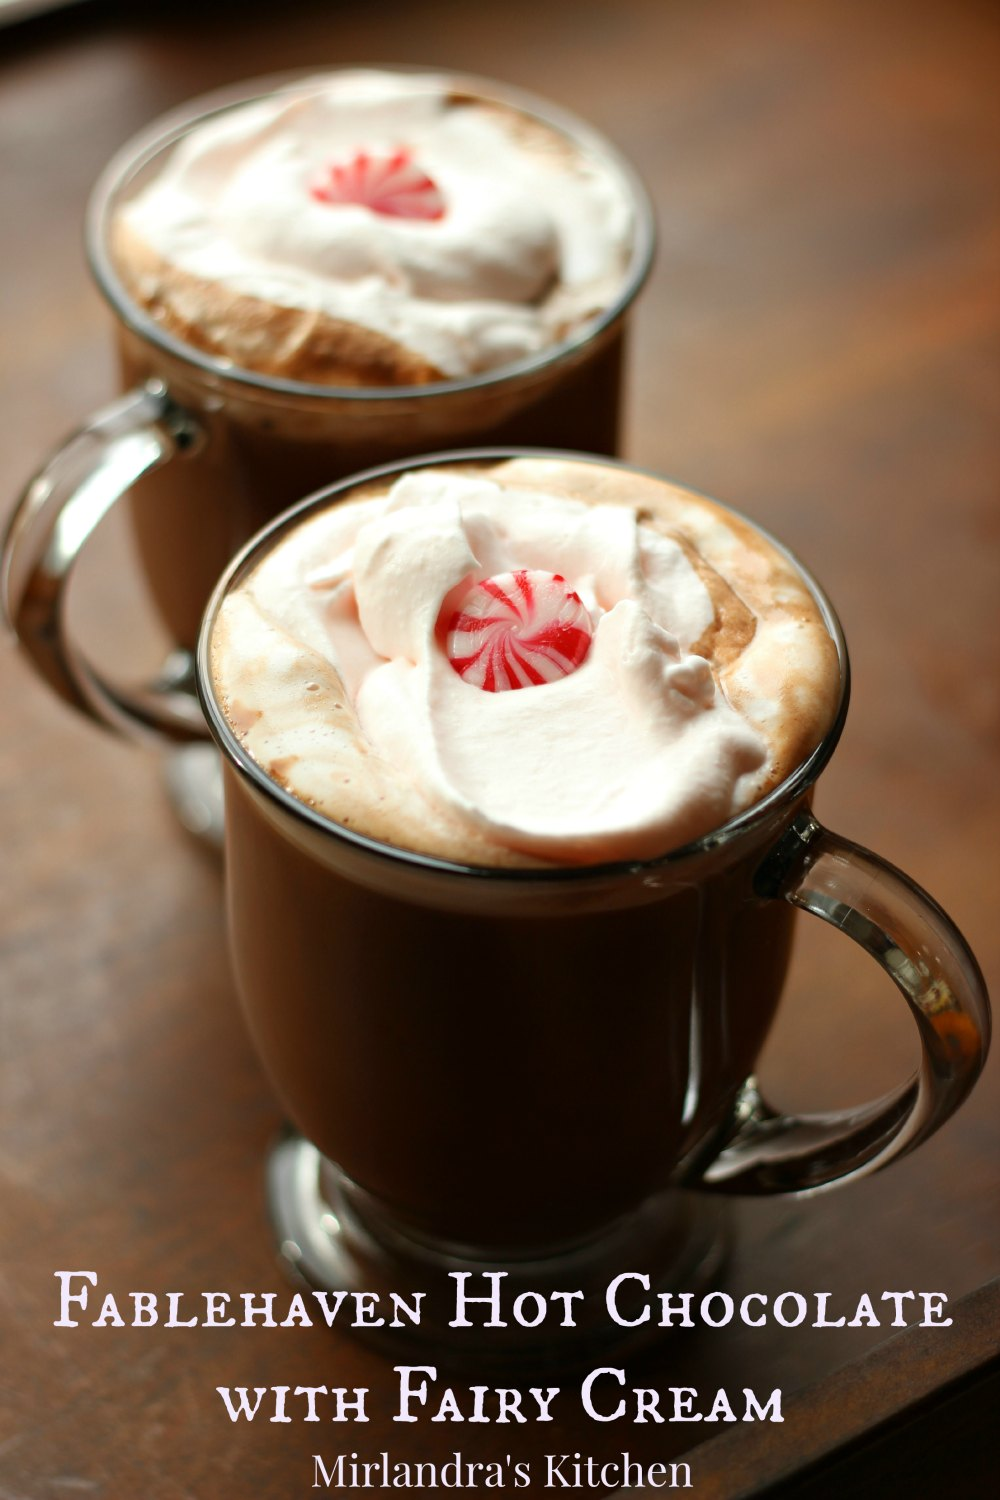 Deliciously rich hot chocolate is the perfect homemade winter drink. My mom made hot chocolate with me when I was a little girl and it made the best memories. Take some time this winter and make some from scratch - you won't regret it. And...if your kids are reading the Fablehaven books this is the perfect treat to share with them!